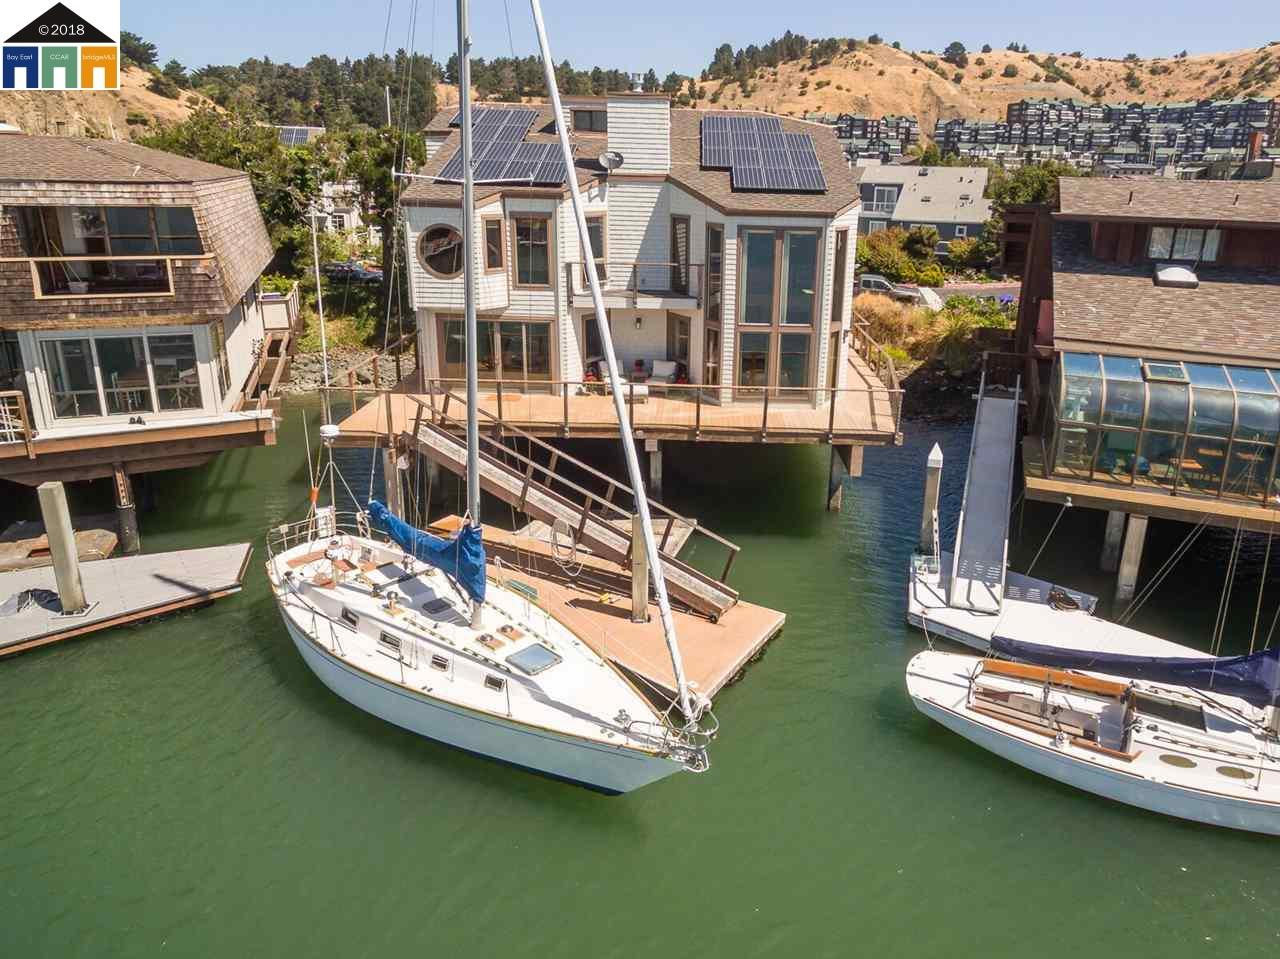 Single Family Home for Sale at 1302 Sanderling Island 1302 Sanderling Island Point Richmond, California 94801 United States